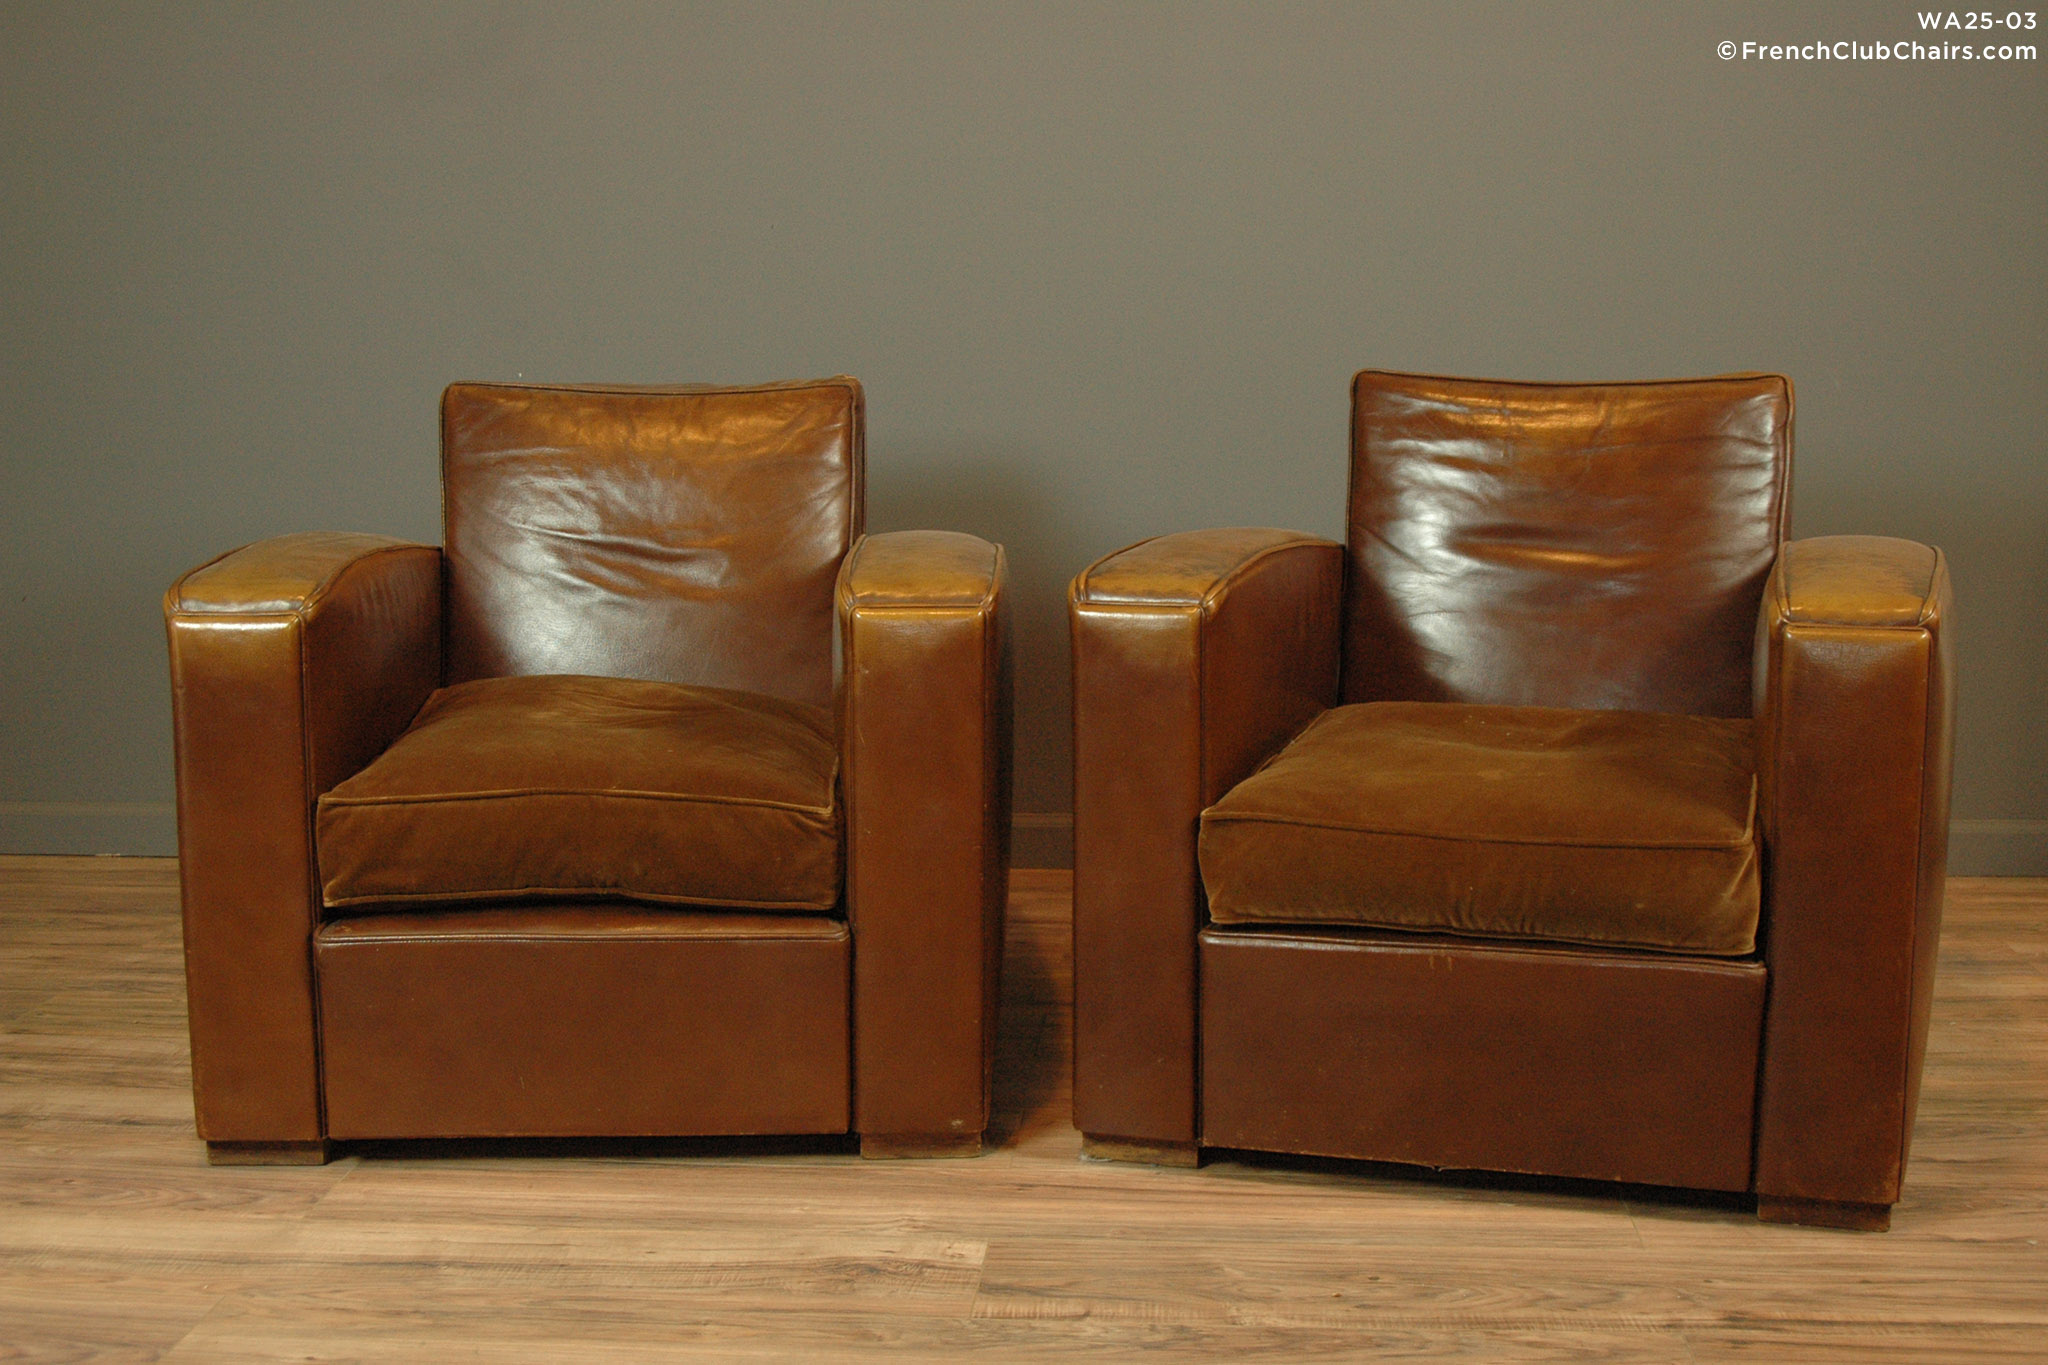 WA25 03_01_DSC_8469 Wa_fcccom. WA25 03_01_DSC_8469 Wa_fcccom. $9,750.00.  Chalon Square Pair Of Leather French Club Chairs ...